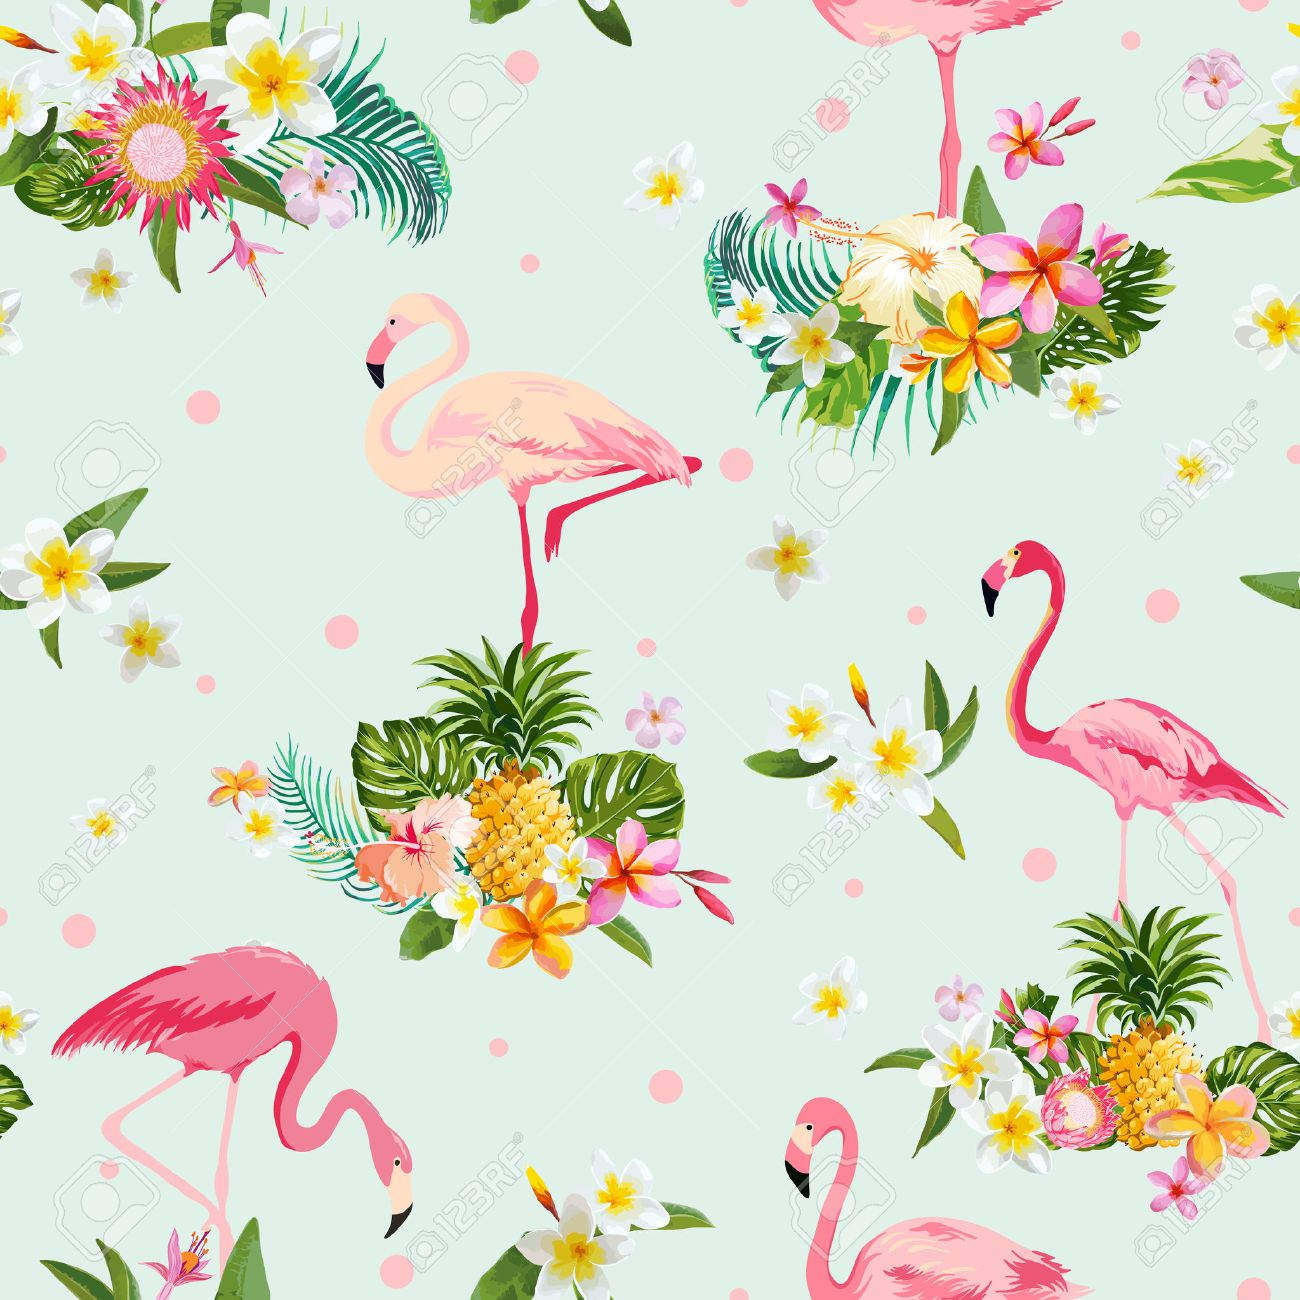 Flamingo Bird and Tropical Flowers Background - Retro seamless pattern - in vector - 52506534